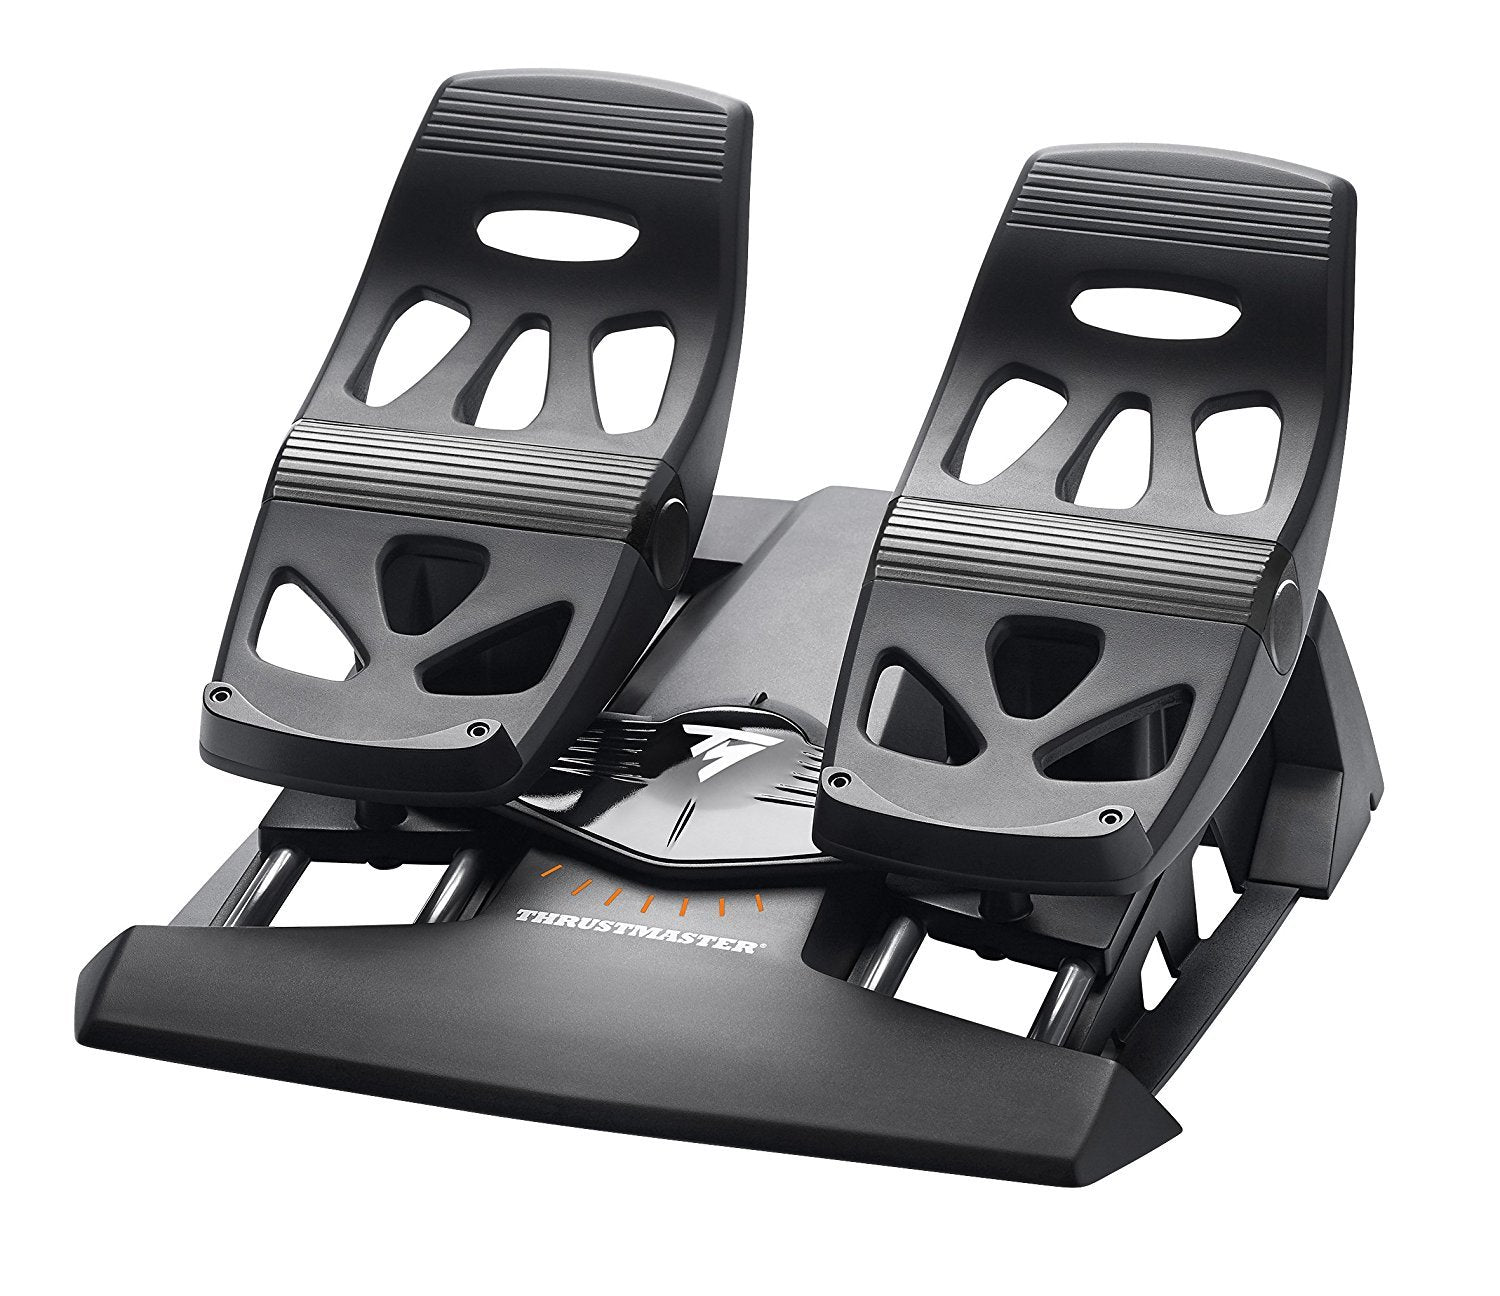 Thrustmaster T-16000M FCS Flight Pack - PC Games